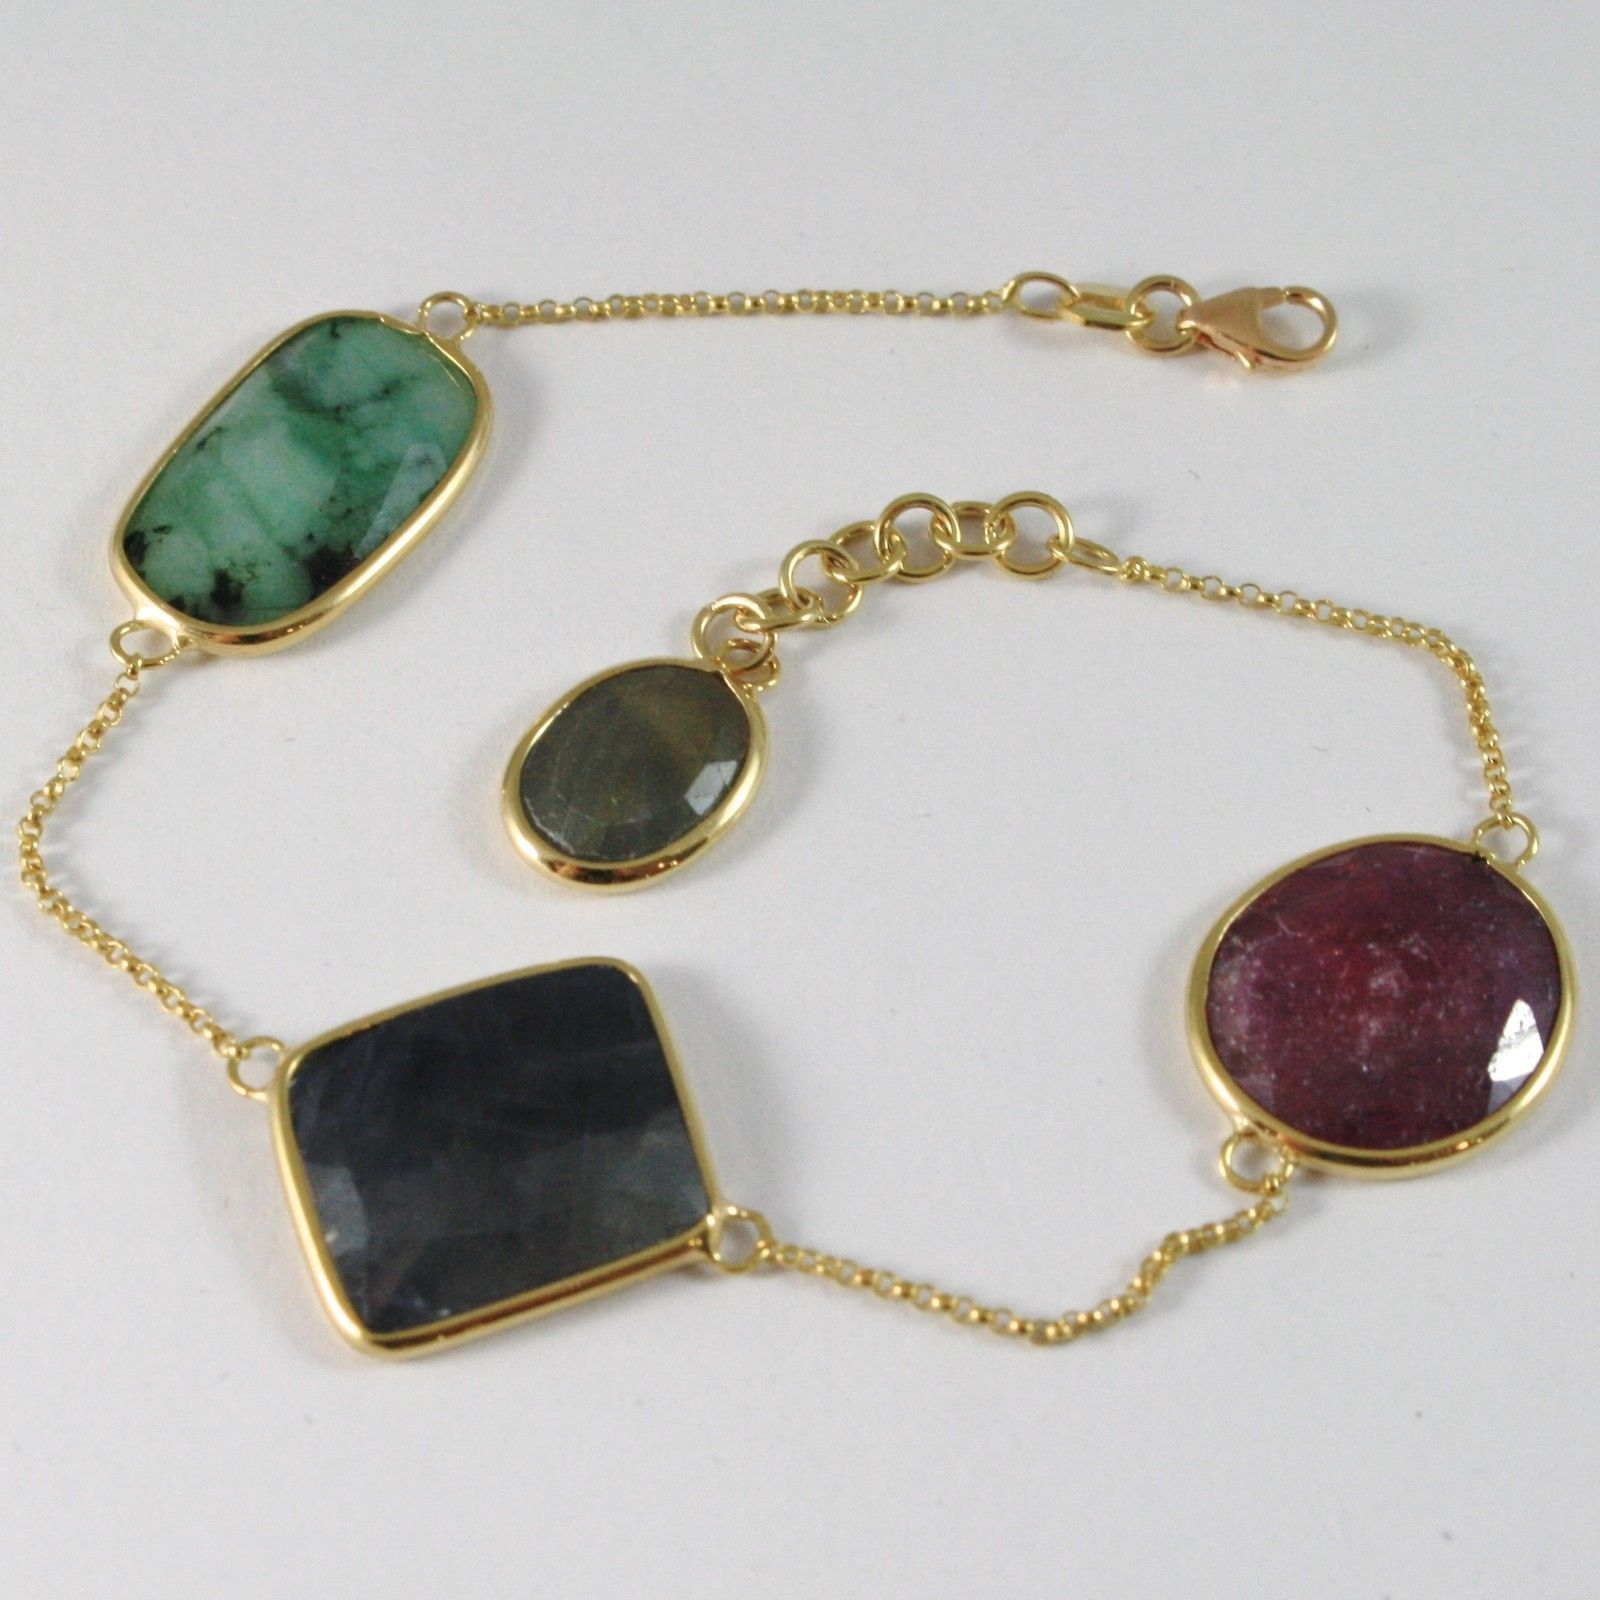 BRACELET YELLOW GOLD 375 9K WITH EMERALD, SAPPHIRE BLUE AND RUBY FACETED